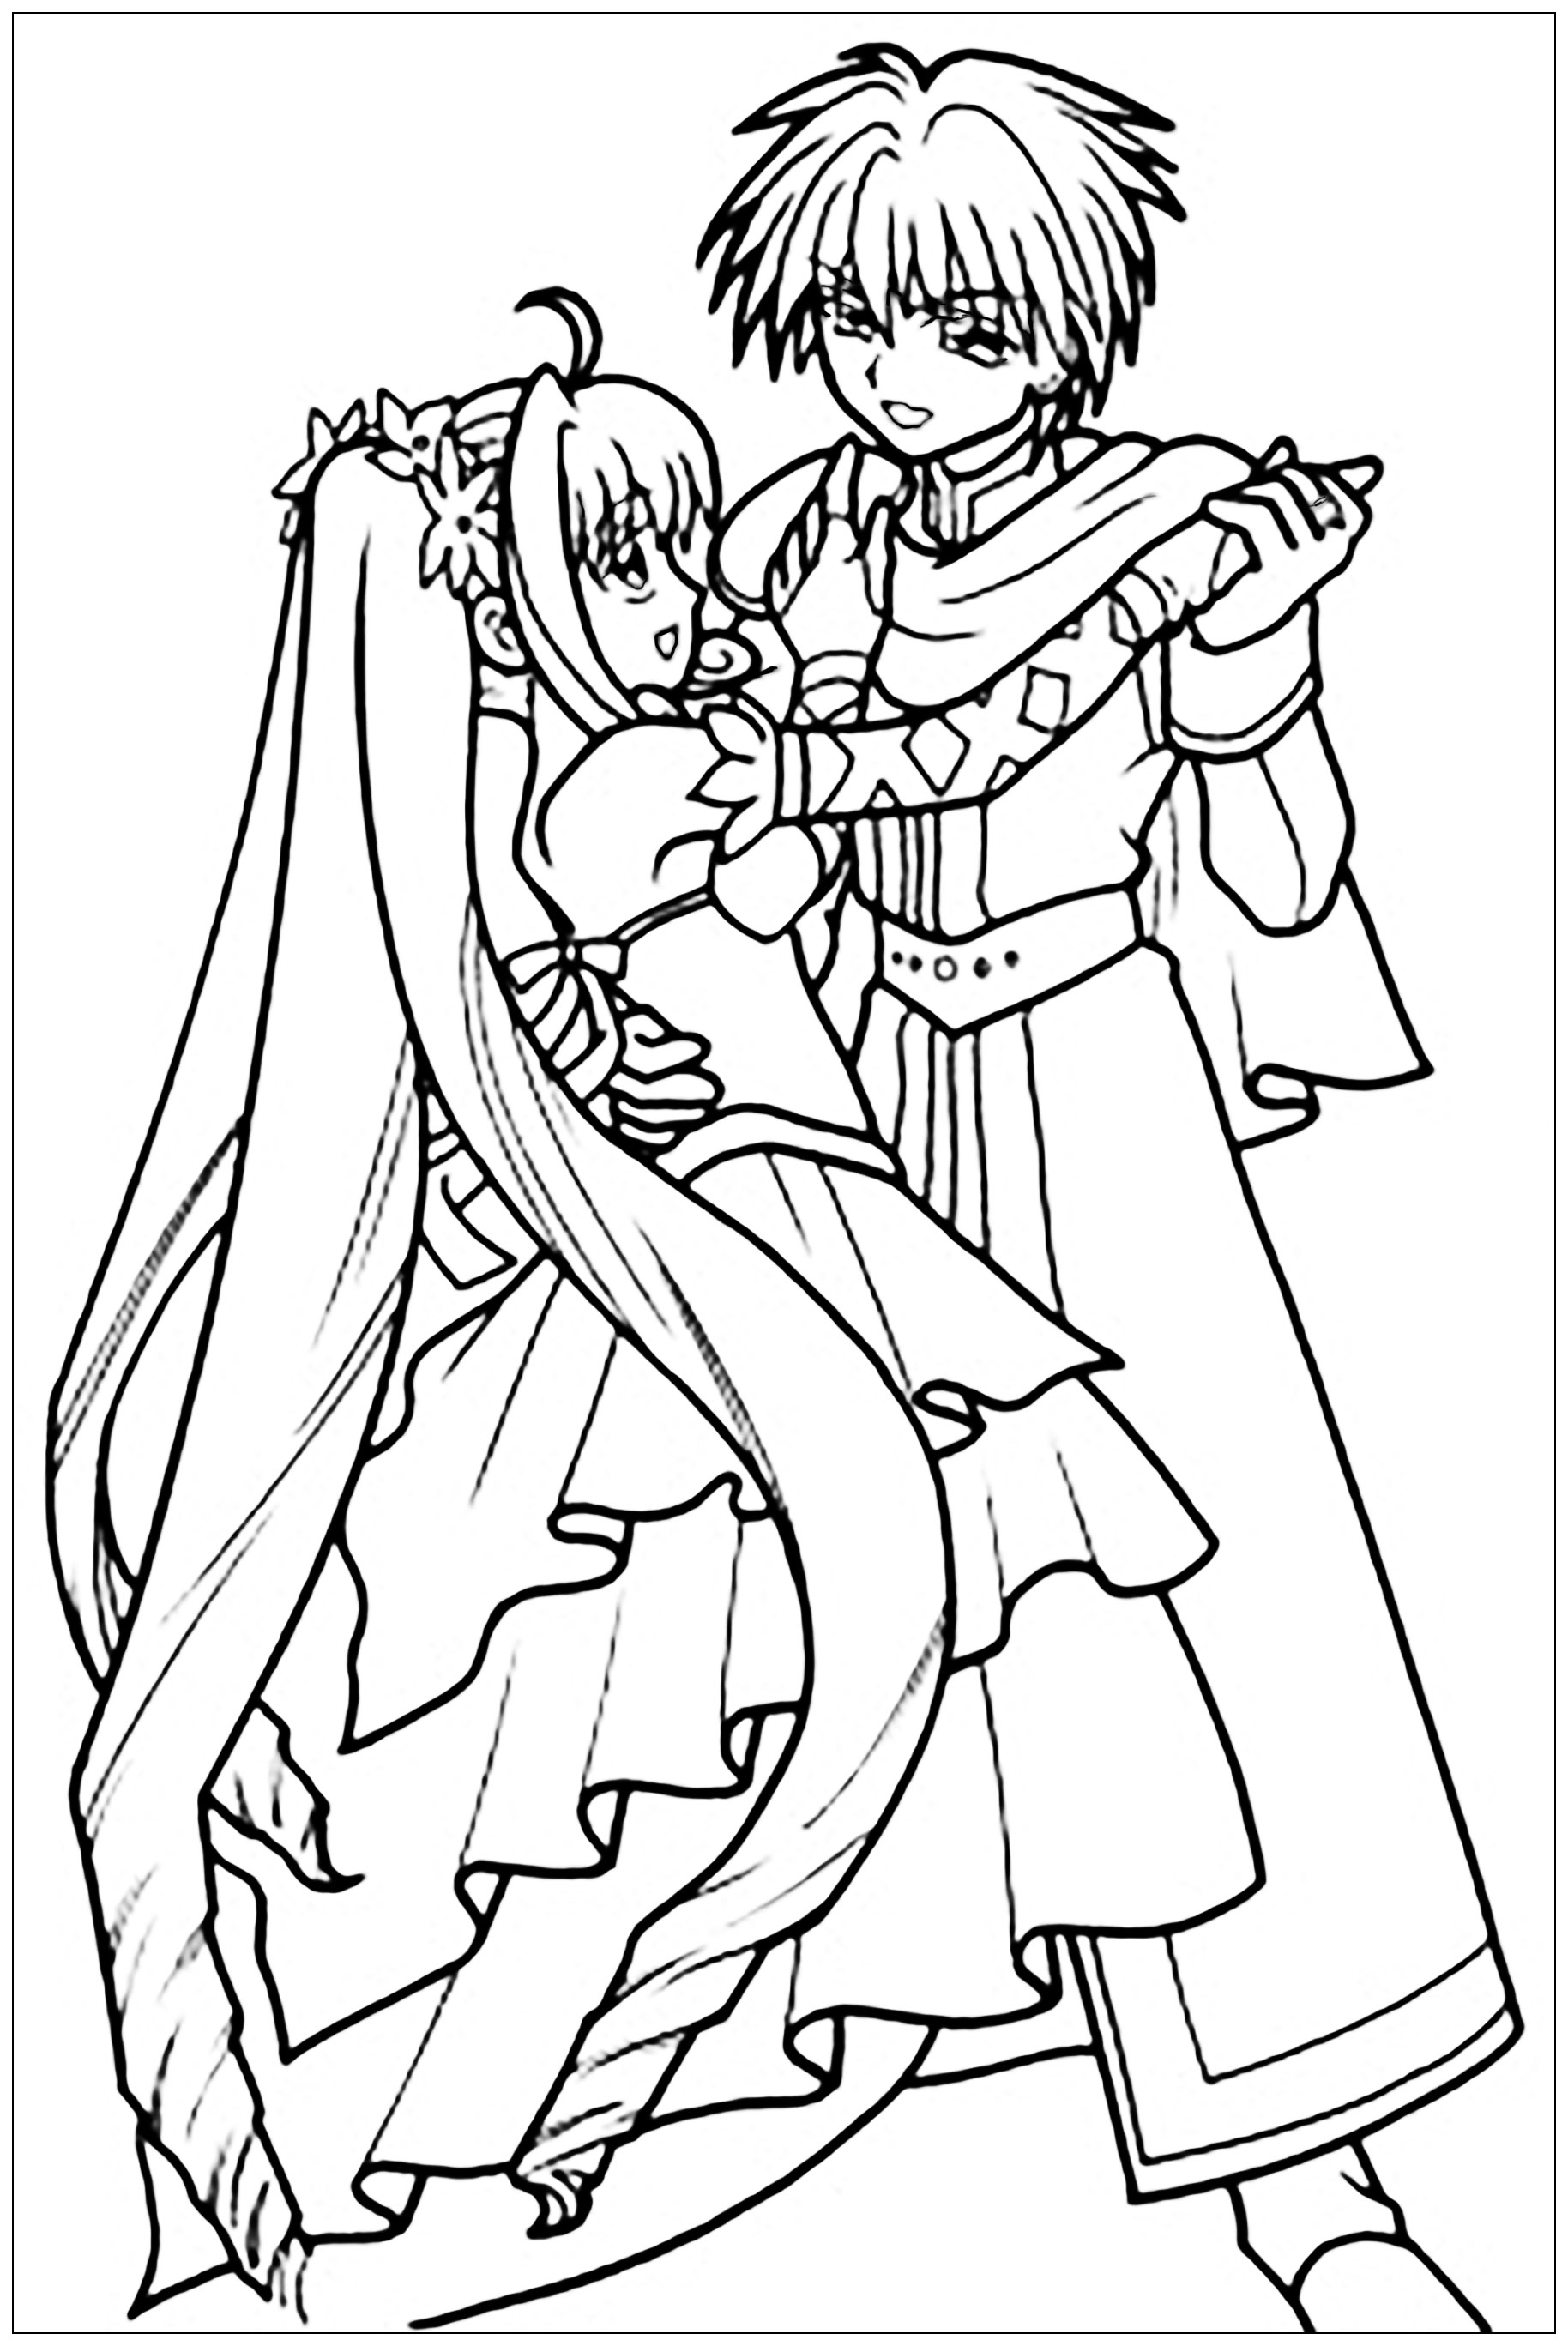 Manga Dance In Costume Manga Anime Adult Coloring Pages